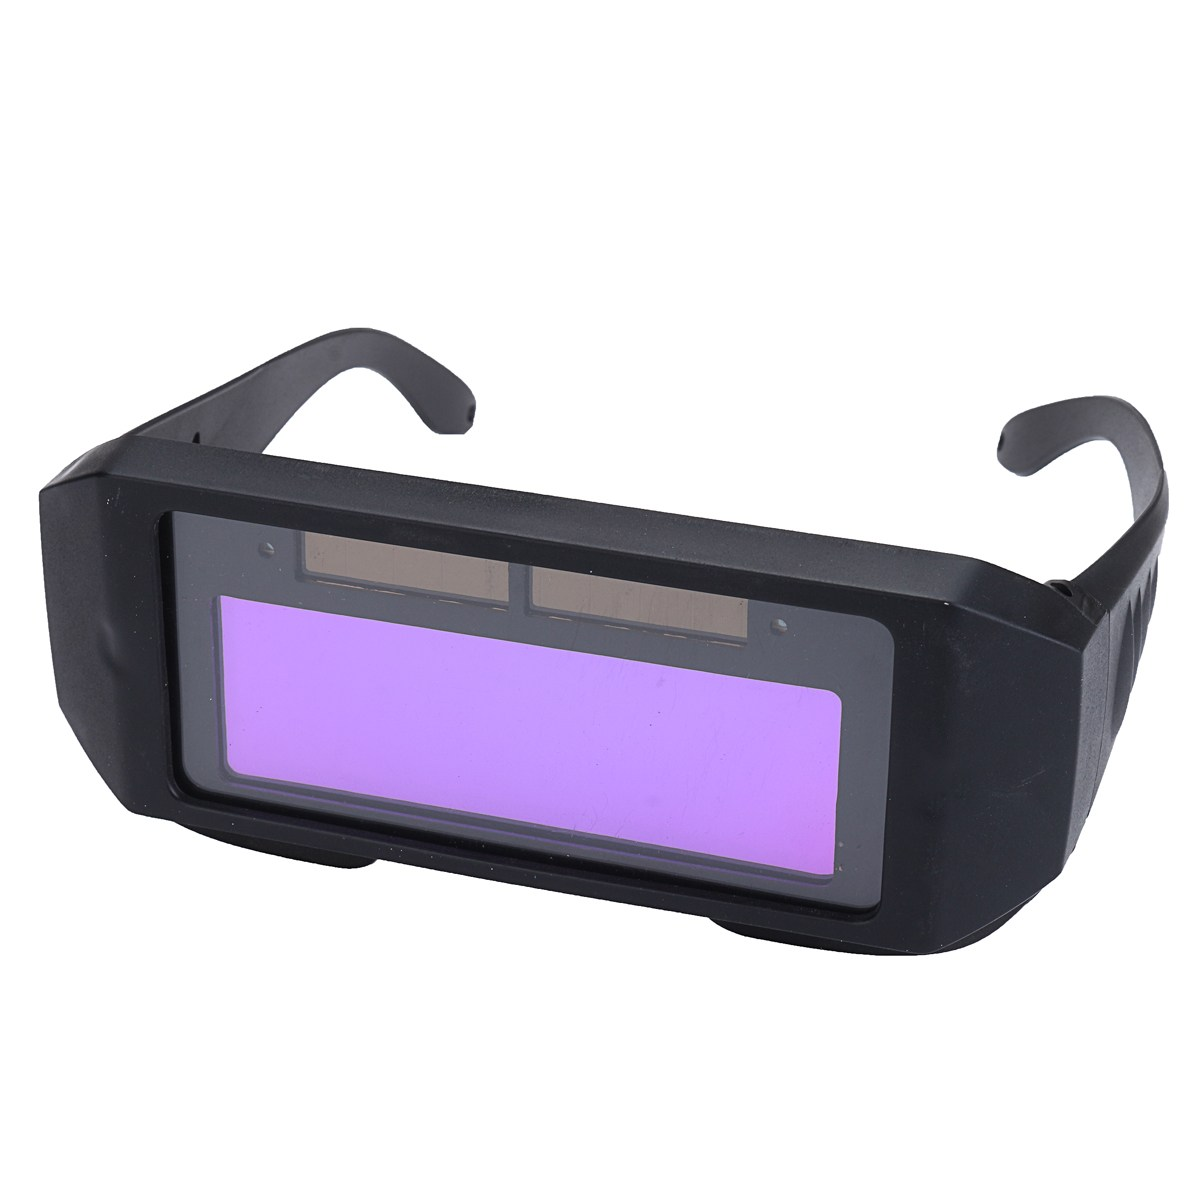 Safurance Solar Powered Auto Darkening Welding Mask Helmet Eyes Goggle Glasses Workplace Safety Protection goggle